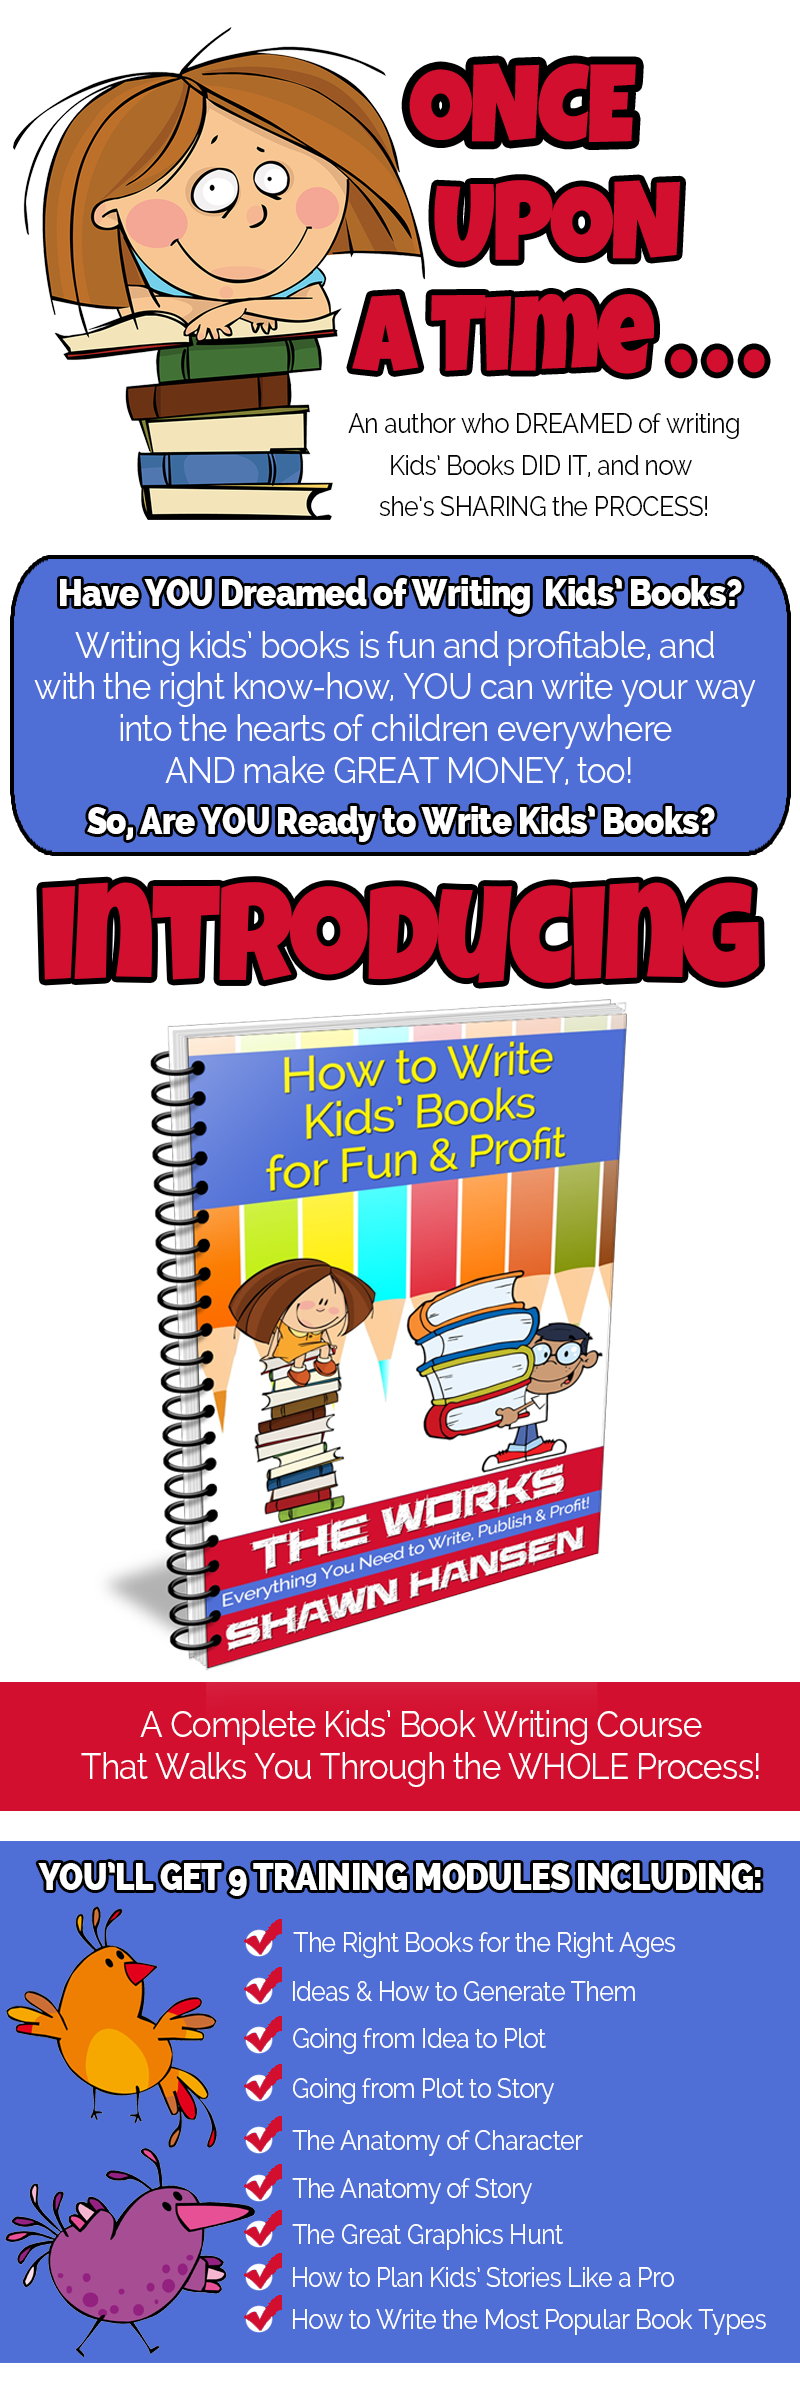 Story Time: How to Write Kids Books for Fun & Profit by Shawn Hansen